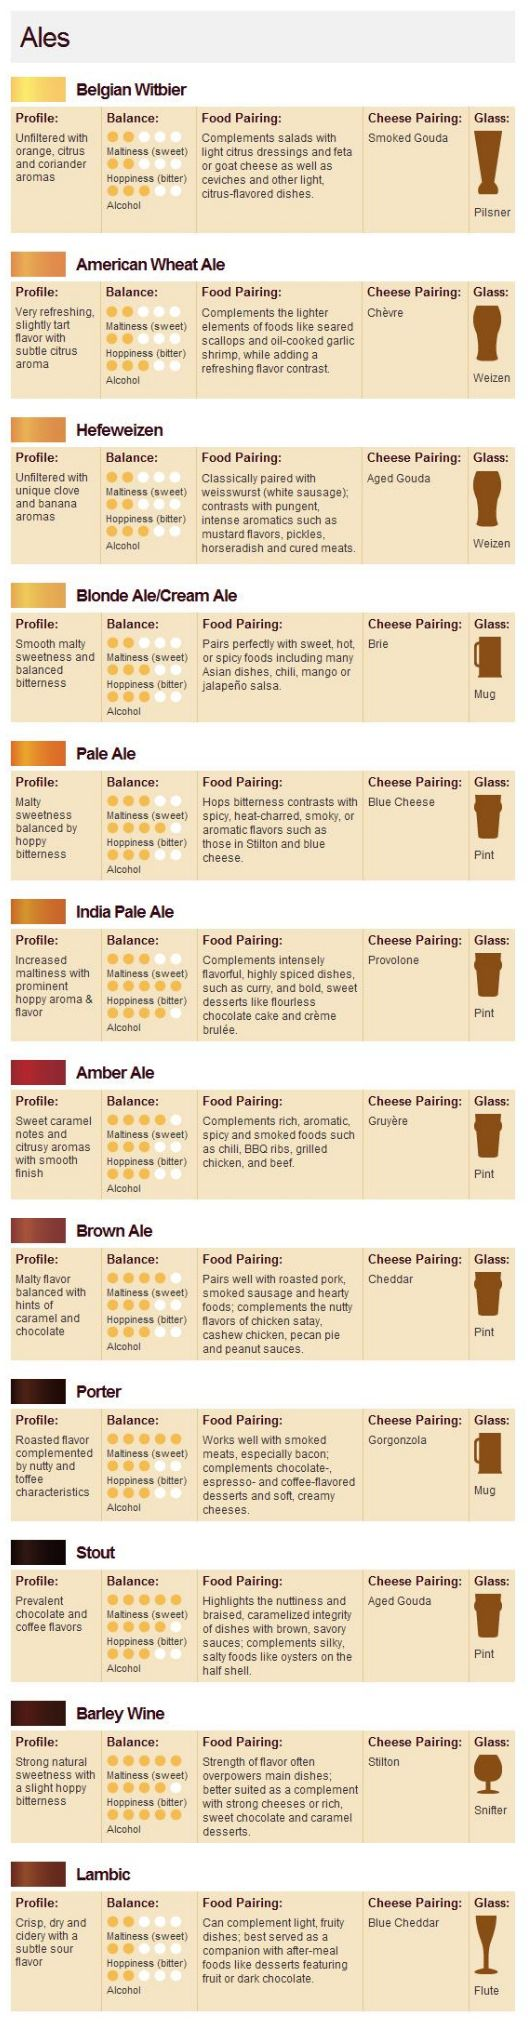 Beer/Cheese Pairing Chart - Ales